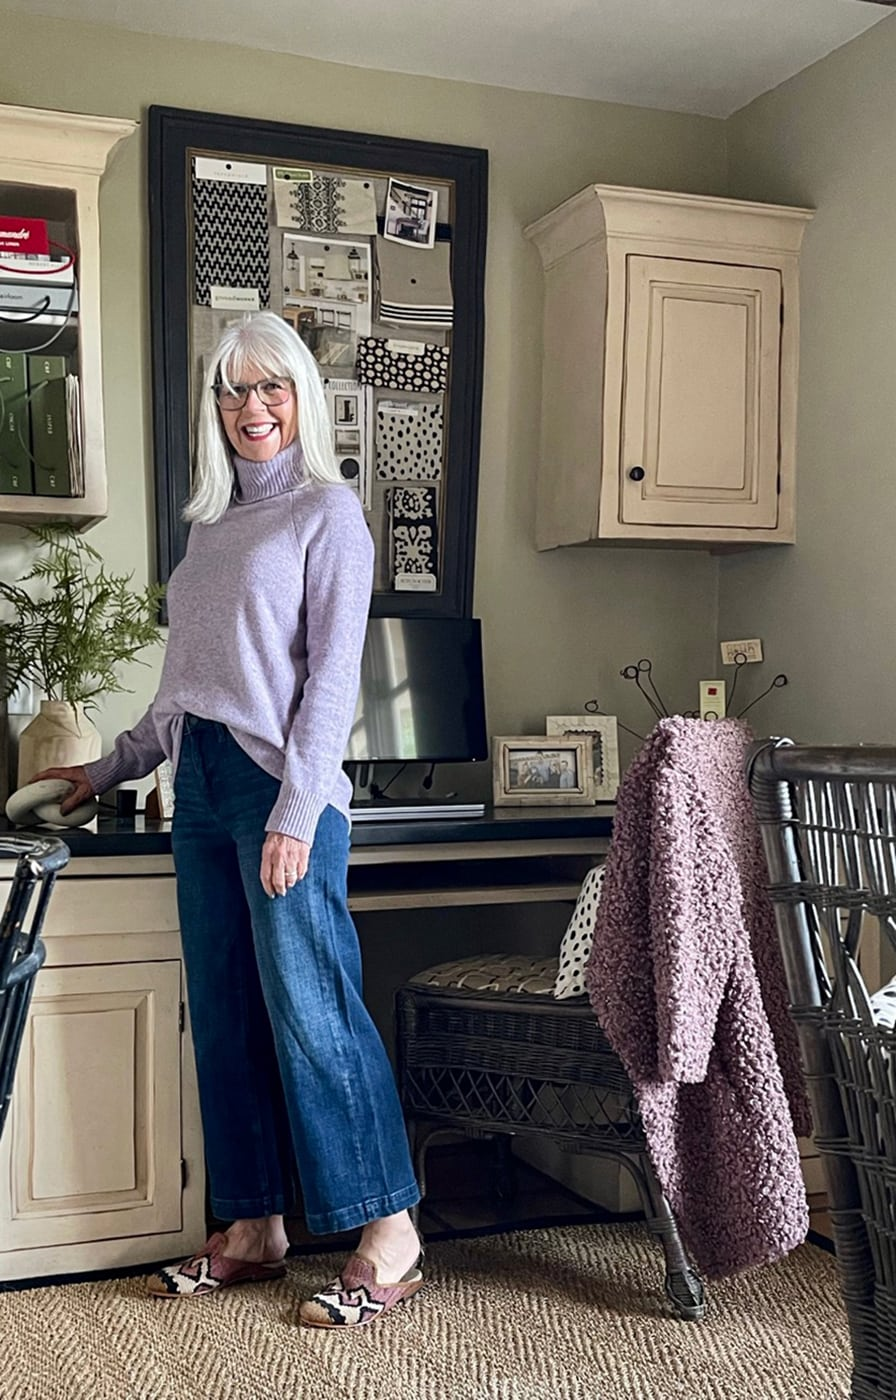 cindy hattersley in j crew sweater and banana republic jeans & artemis mules in her office